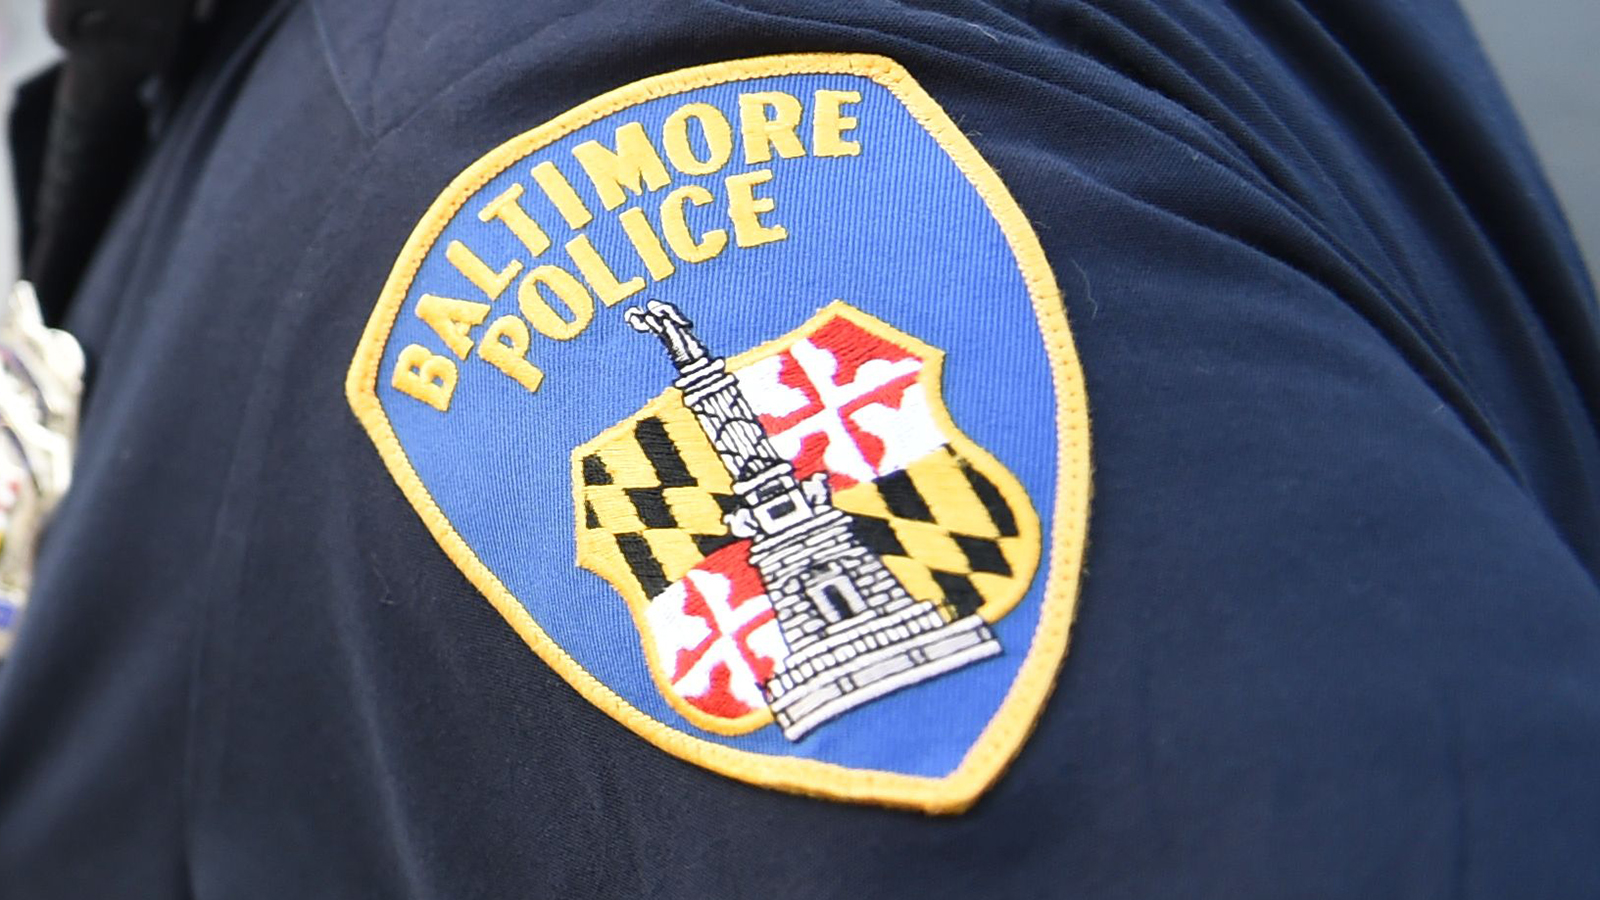 A Baltimore police sergeant was spat on and kicked during a check, authorities say